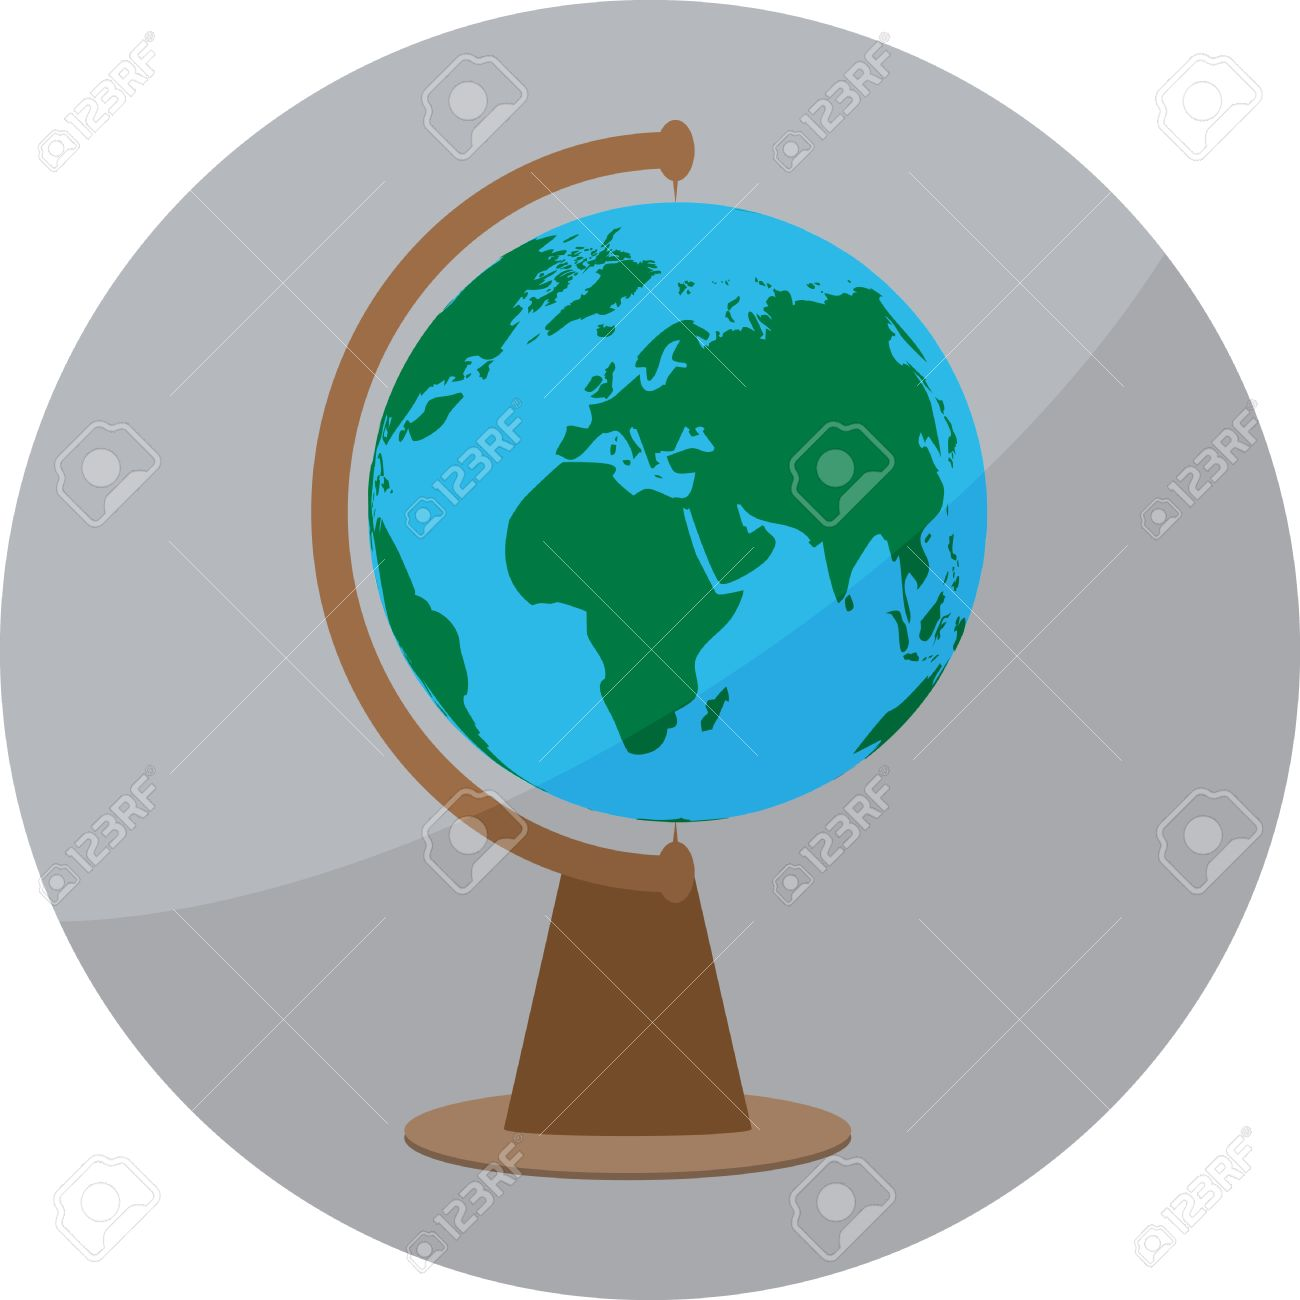 Icon globe sign globe badge app sphere ball world earth map globe badge app sphere ball world earth map gumiabroncs Images